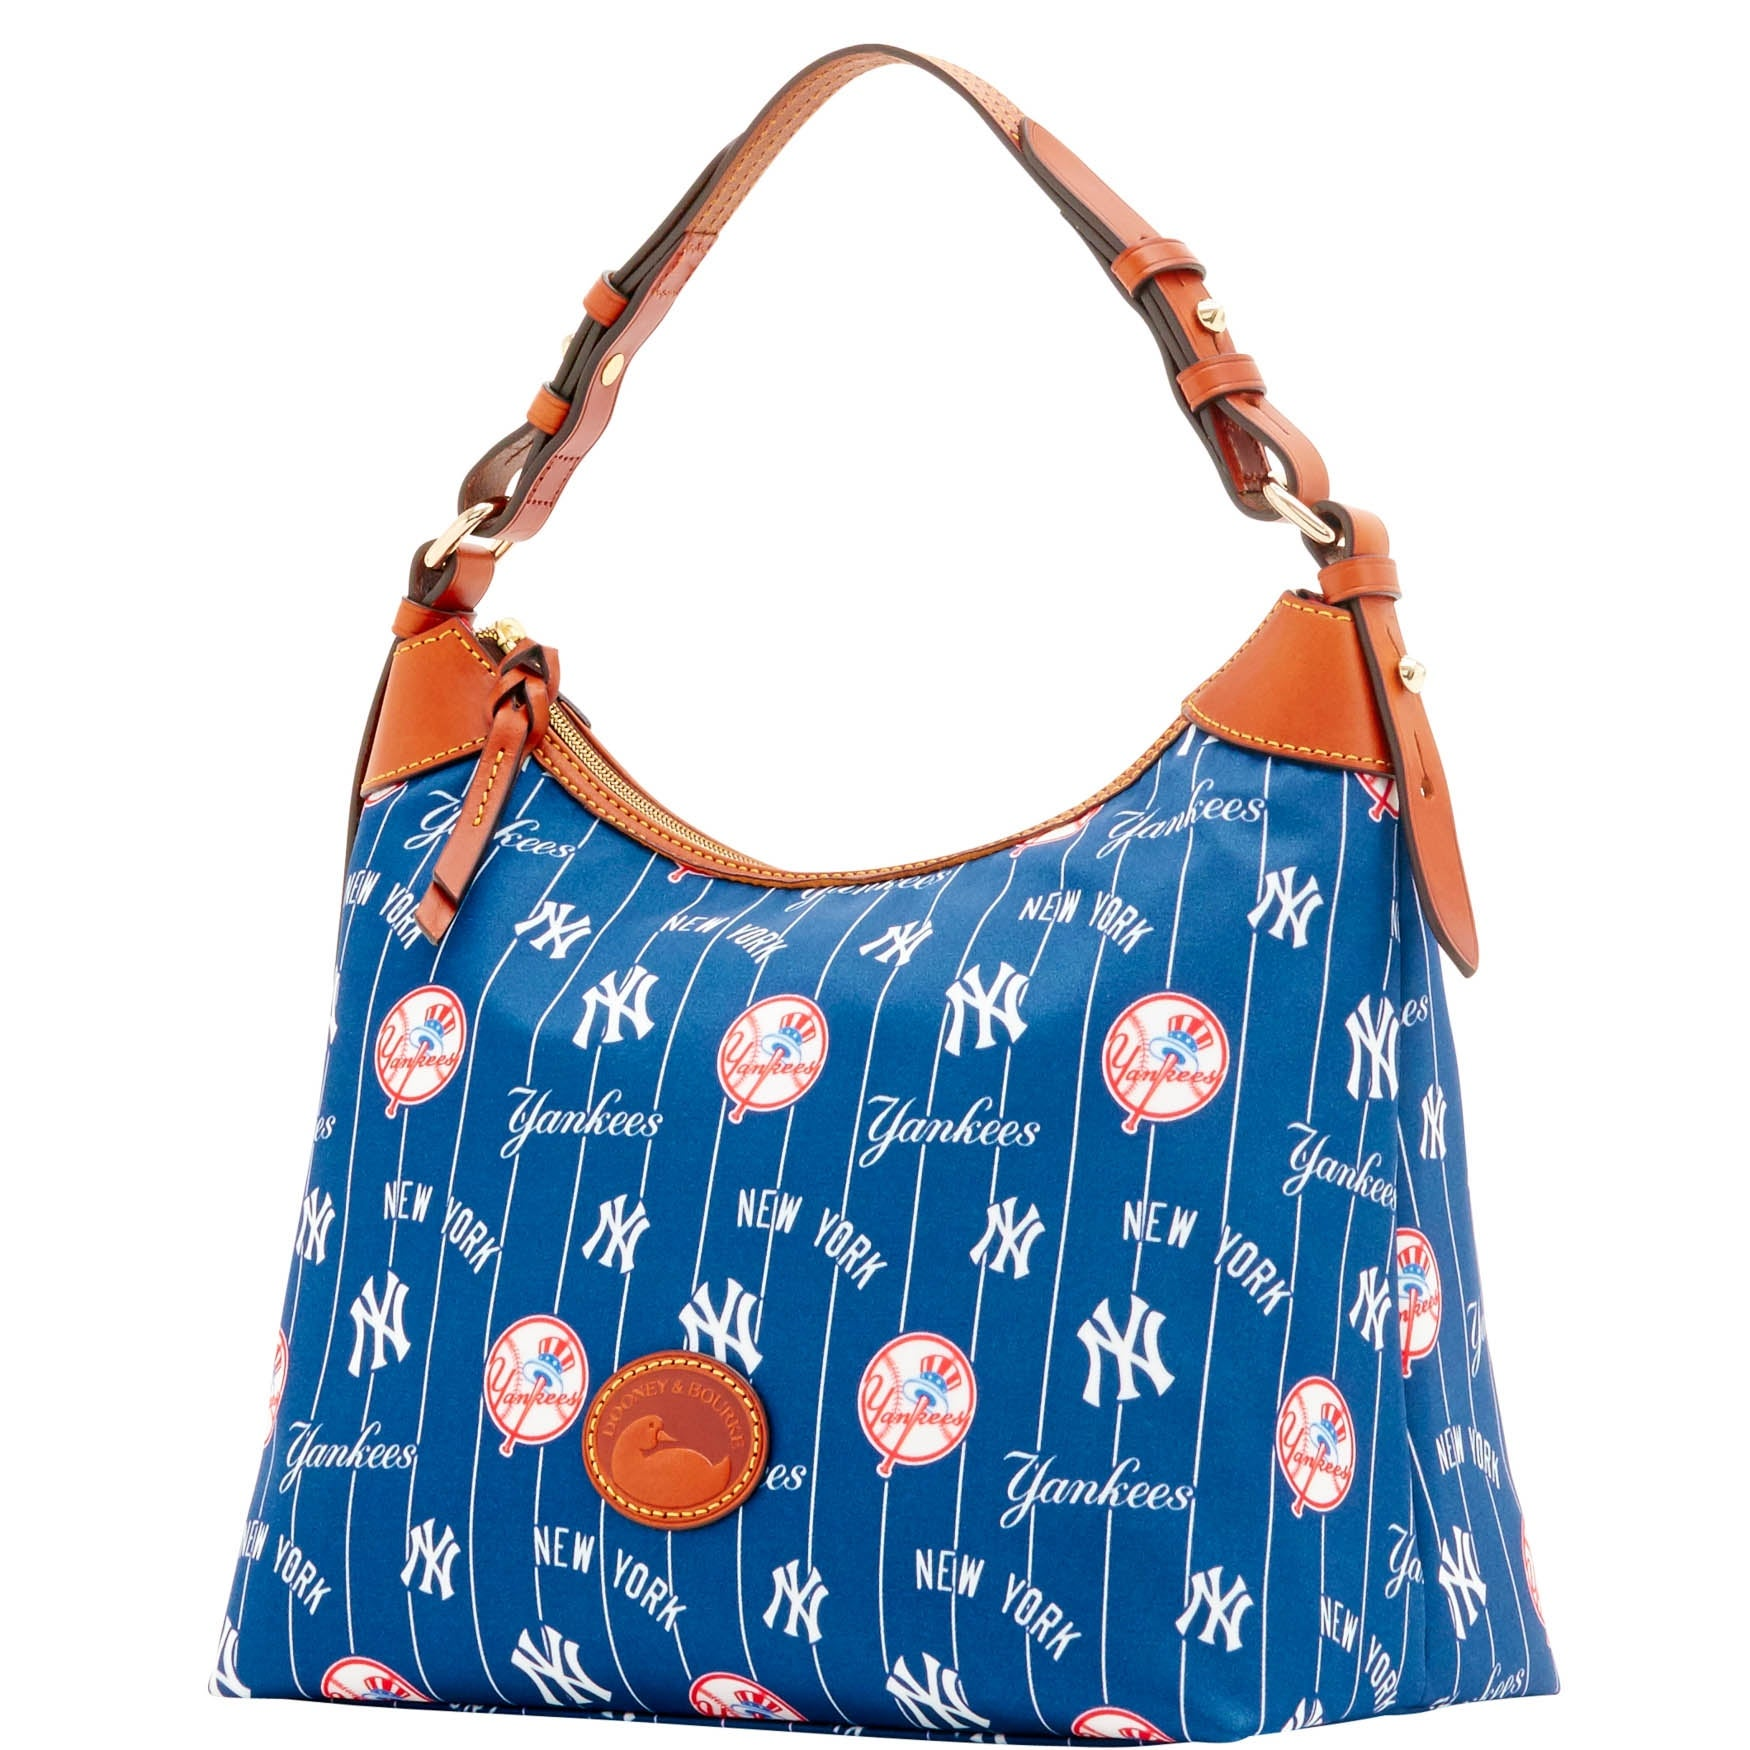 934efb421115 Dooney   Bourke MLB New York Yankees Large Erica Shoulder Bag (Introduced  by Dooney   Bourke at  168 in May 2016)